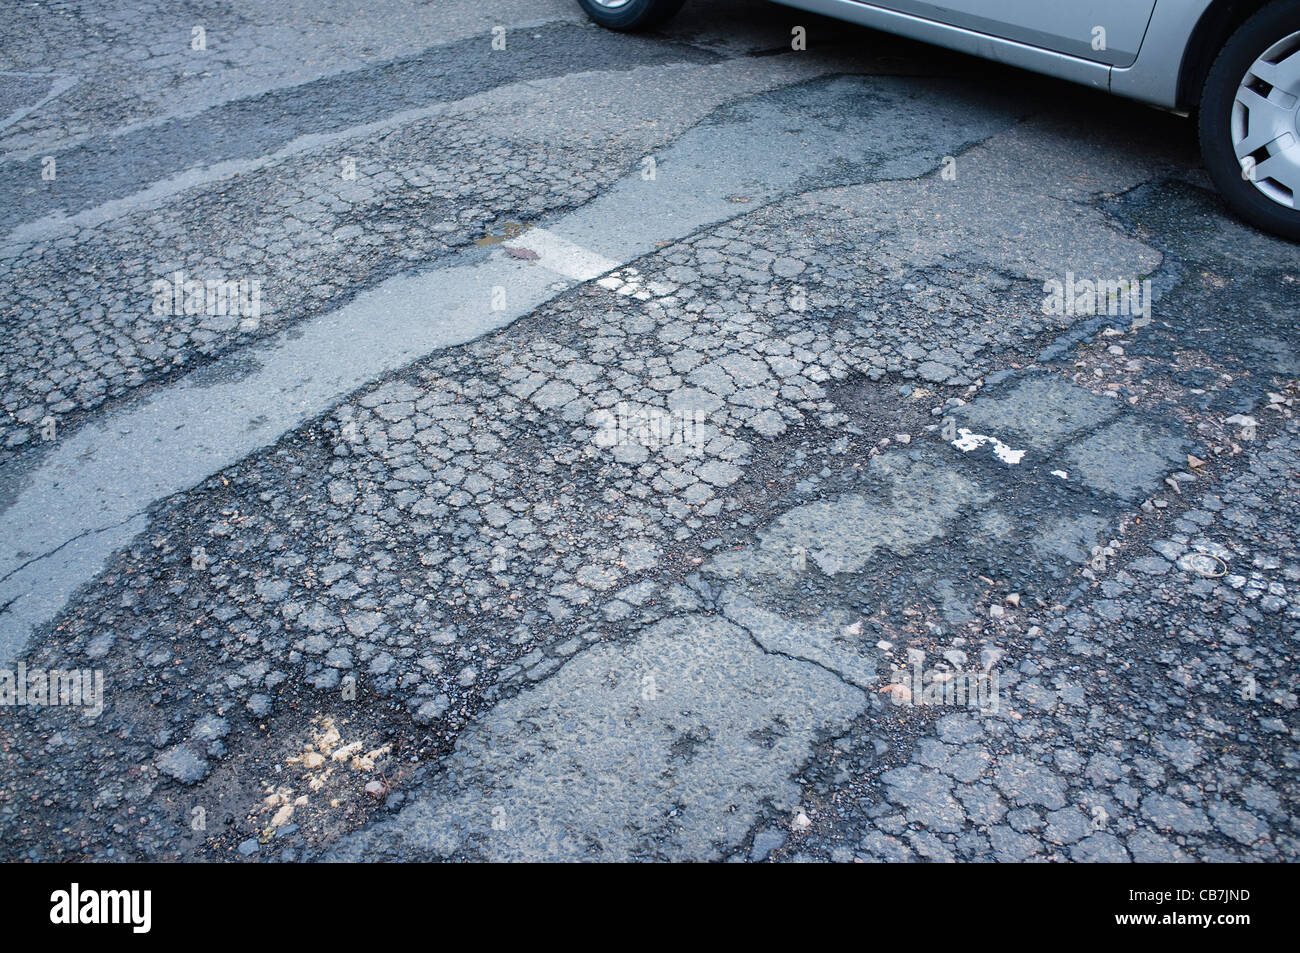 A  road which is worse for wear and in need of repair  with potholes and broken tarmac. UK - Stock Image